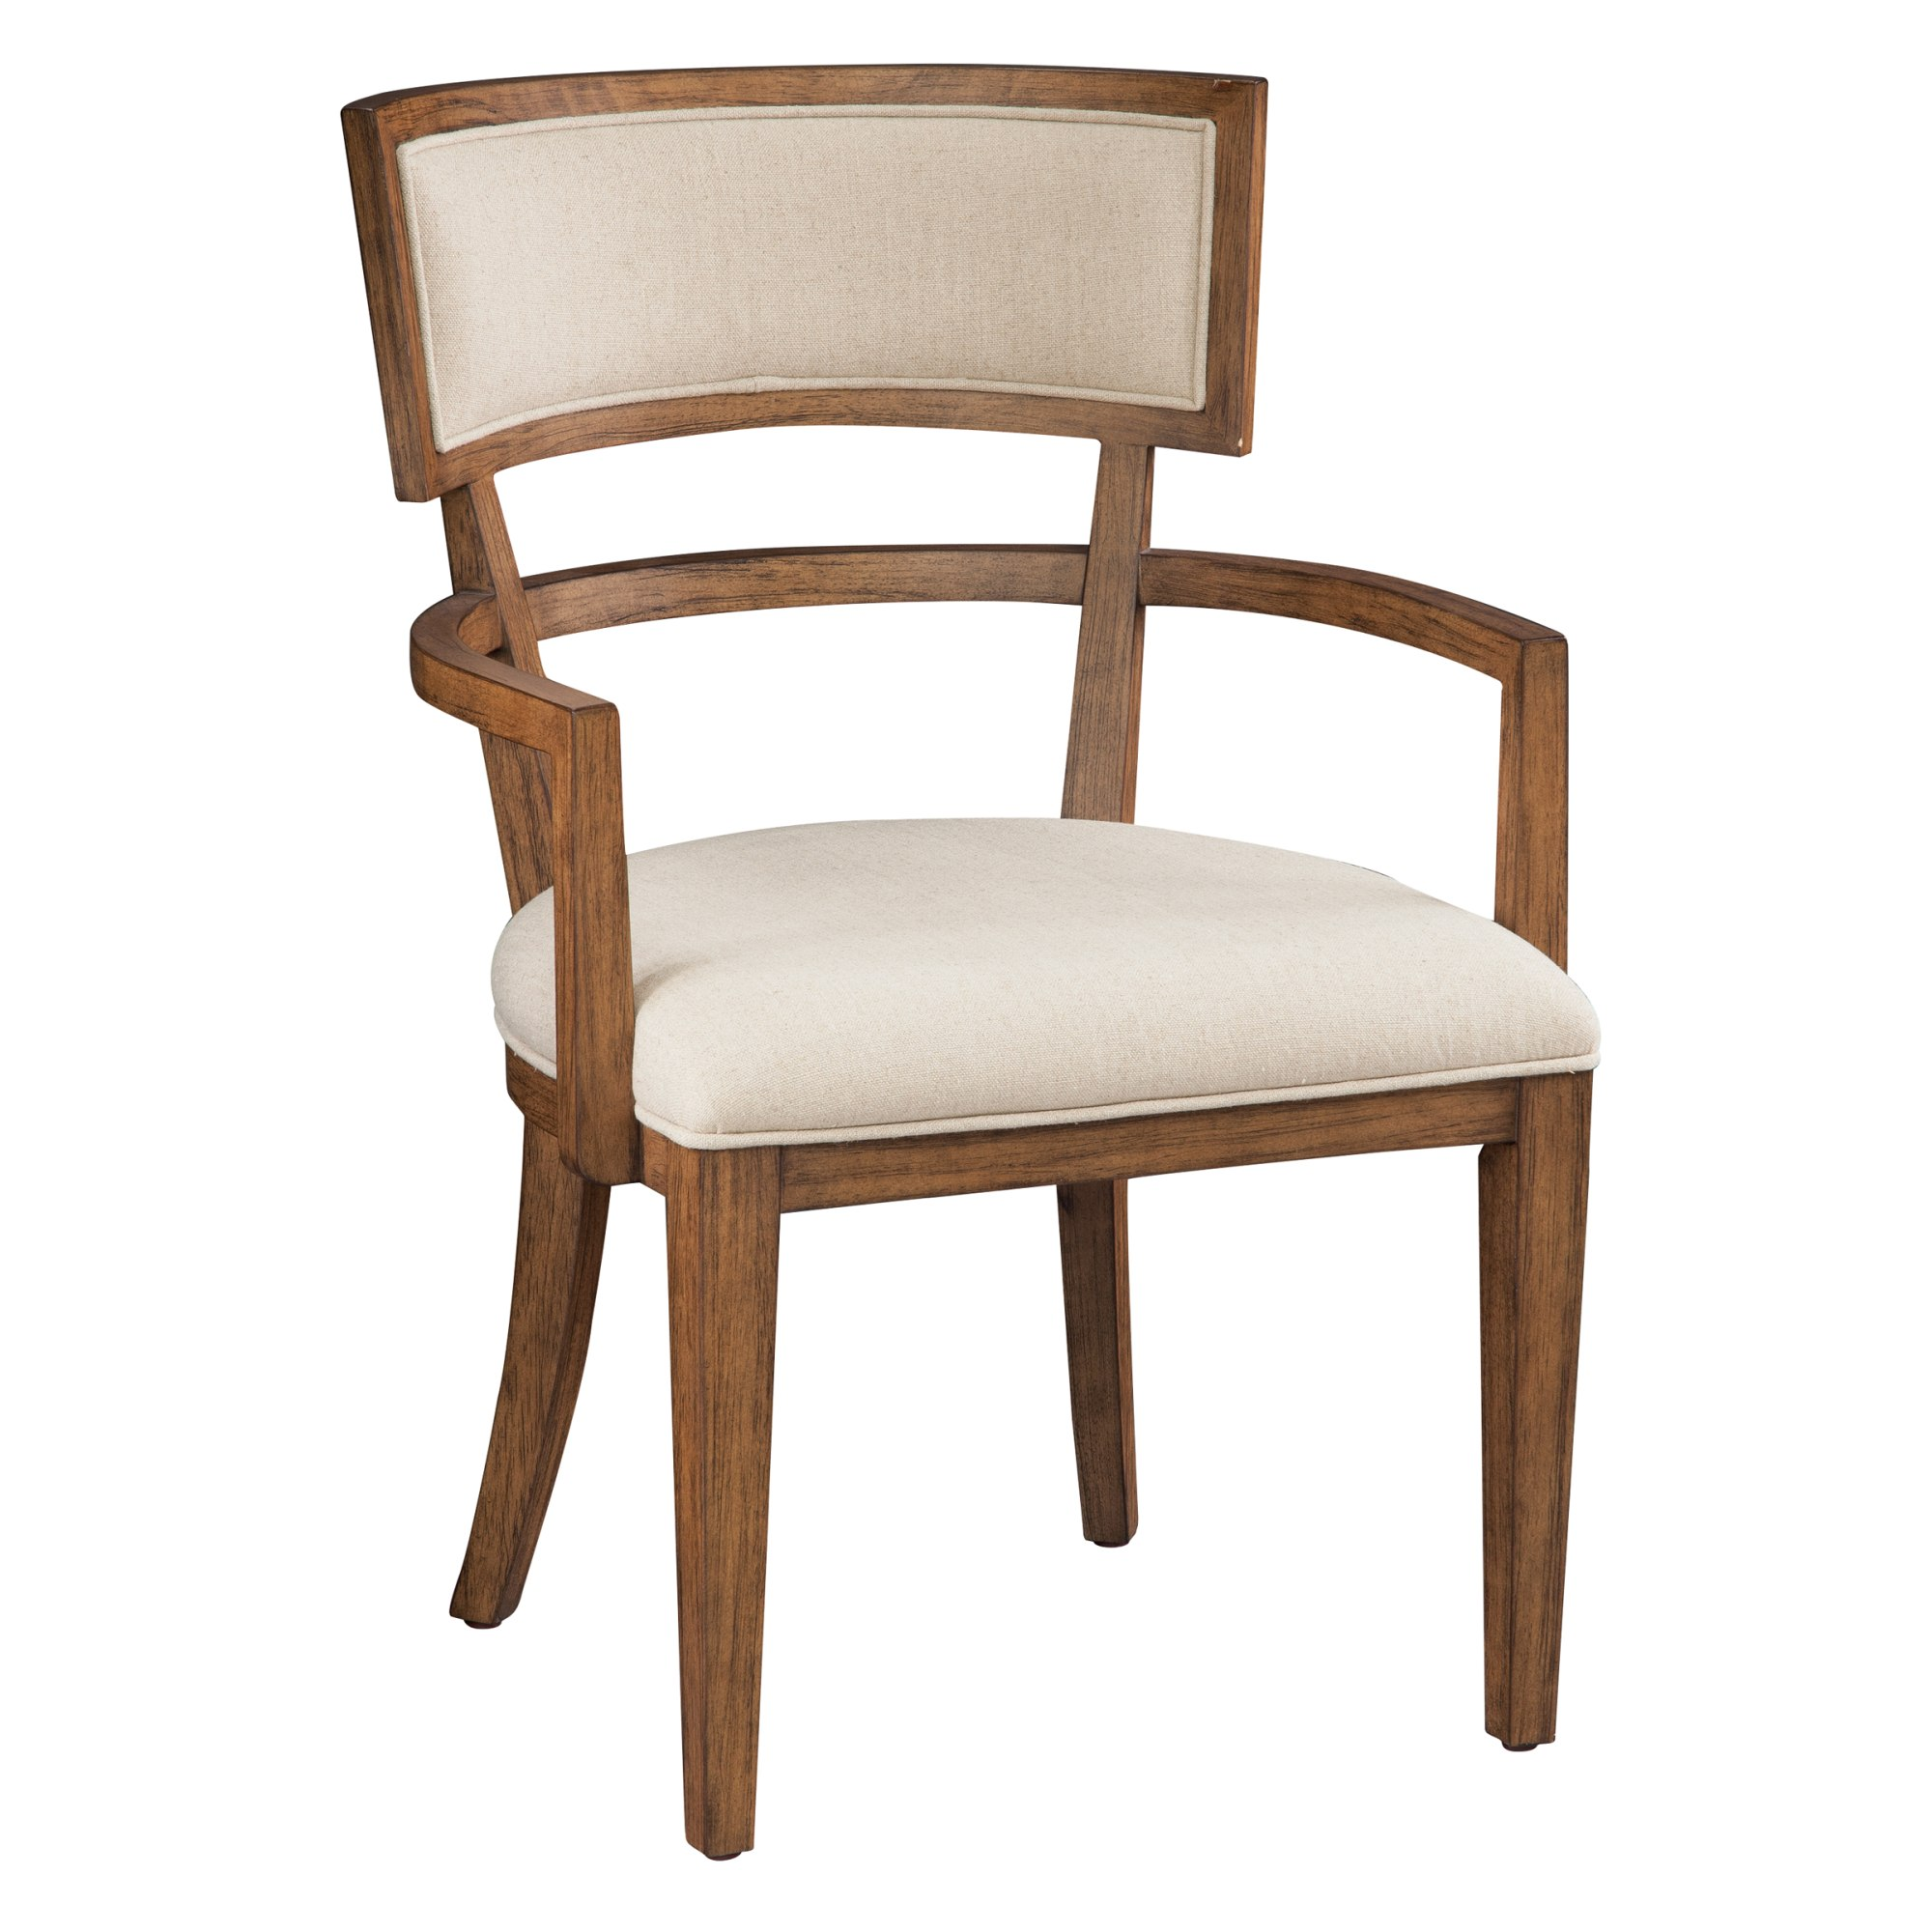 Image for 2-3722 Bedford Park Arm Chair from Hekman Official Website